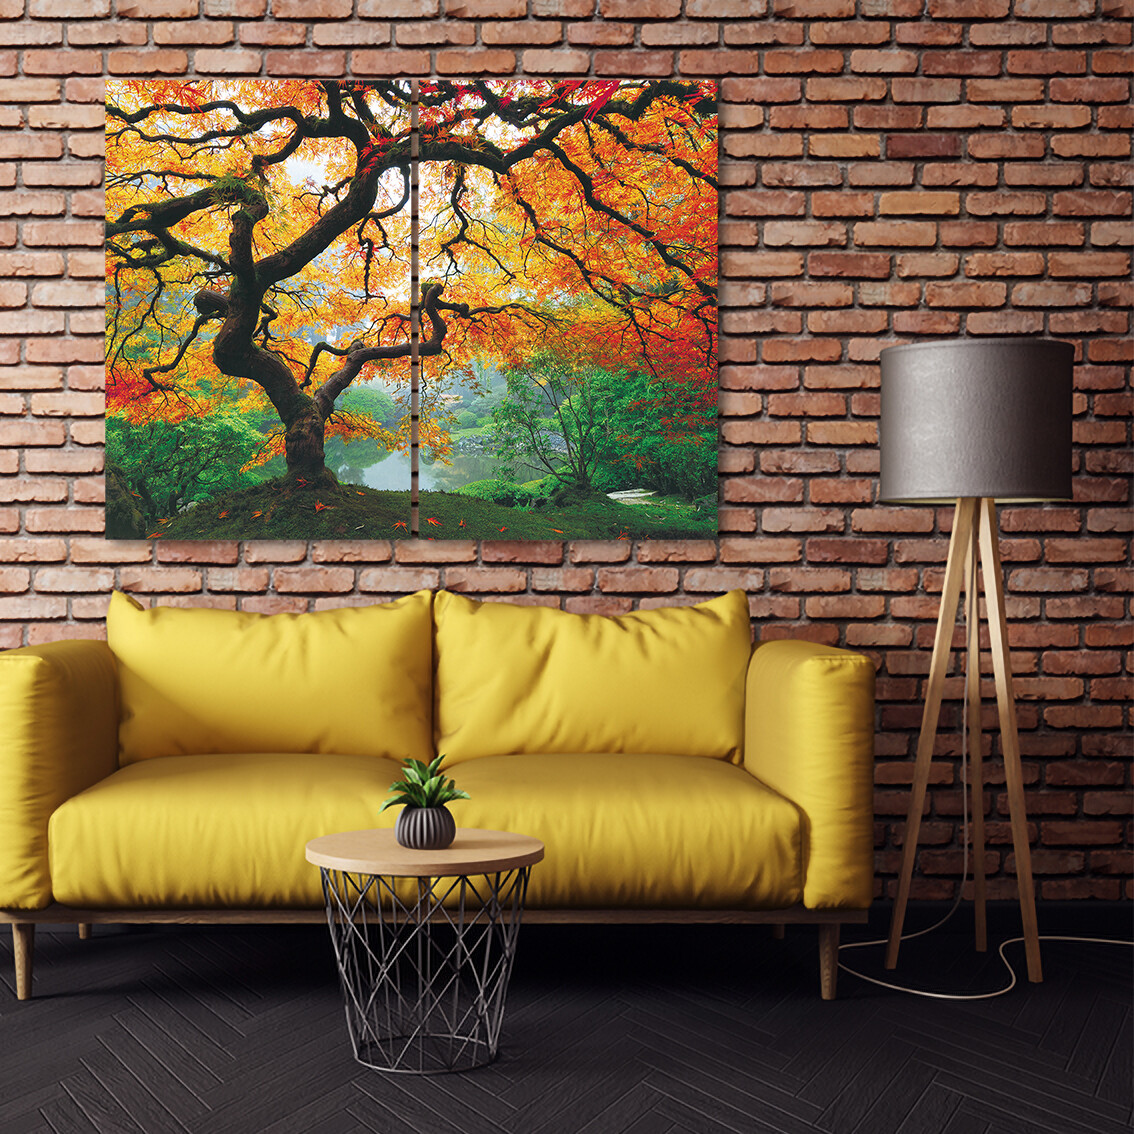 Japanese Maple Tree  - Modern Luxury Wall art Printed on Acrylic Glass - Frameless and Ready to Hang